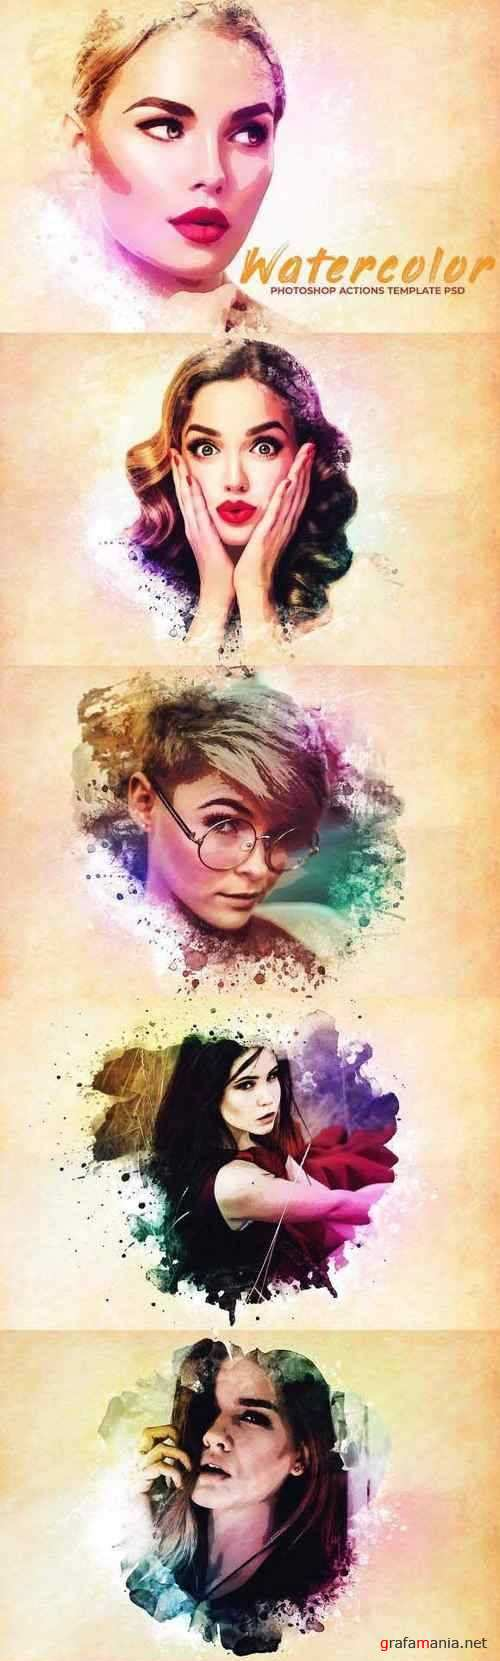 Watercolor Photoshop PSD Template 2735911